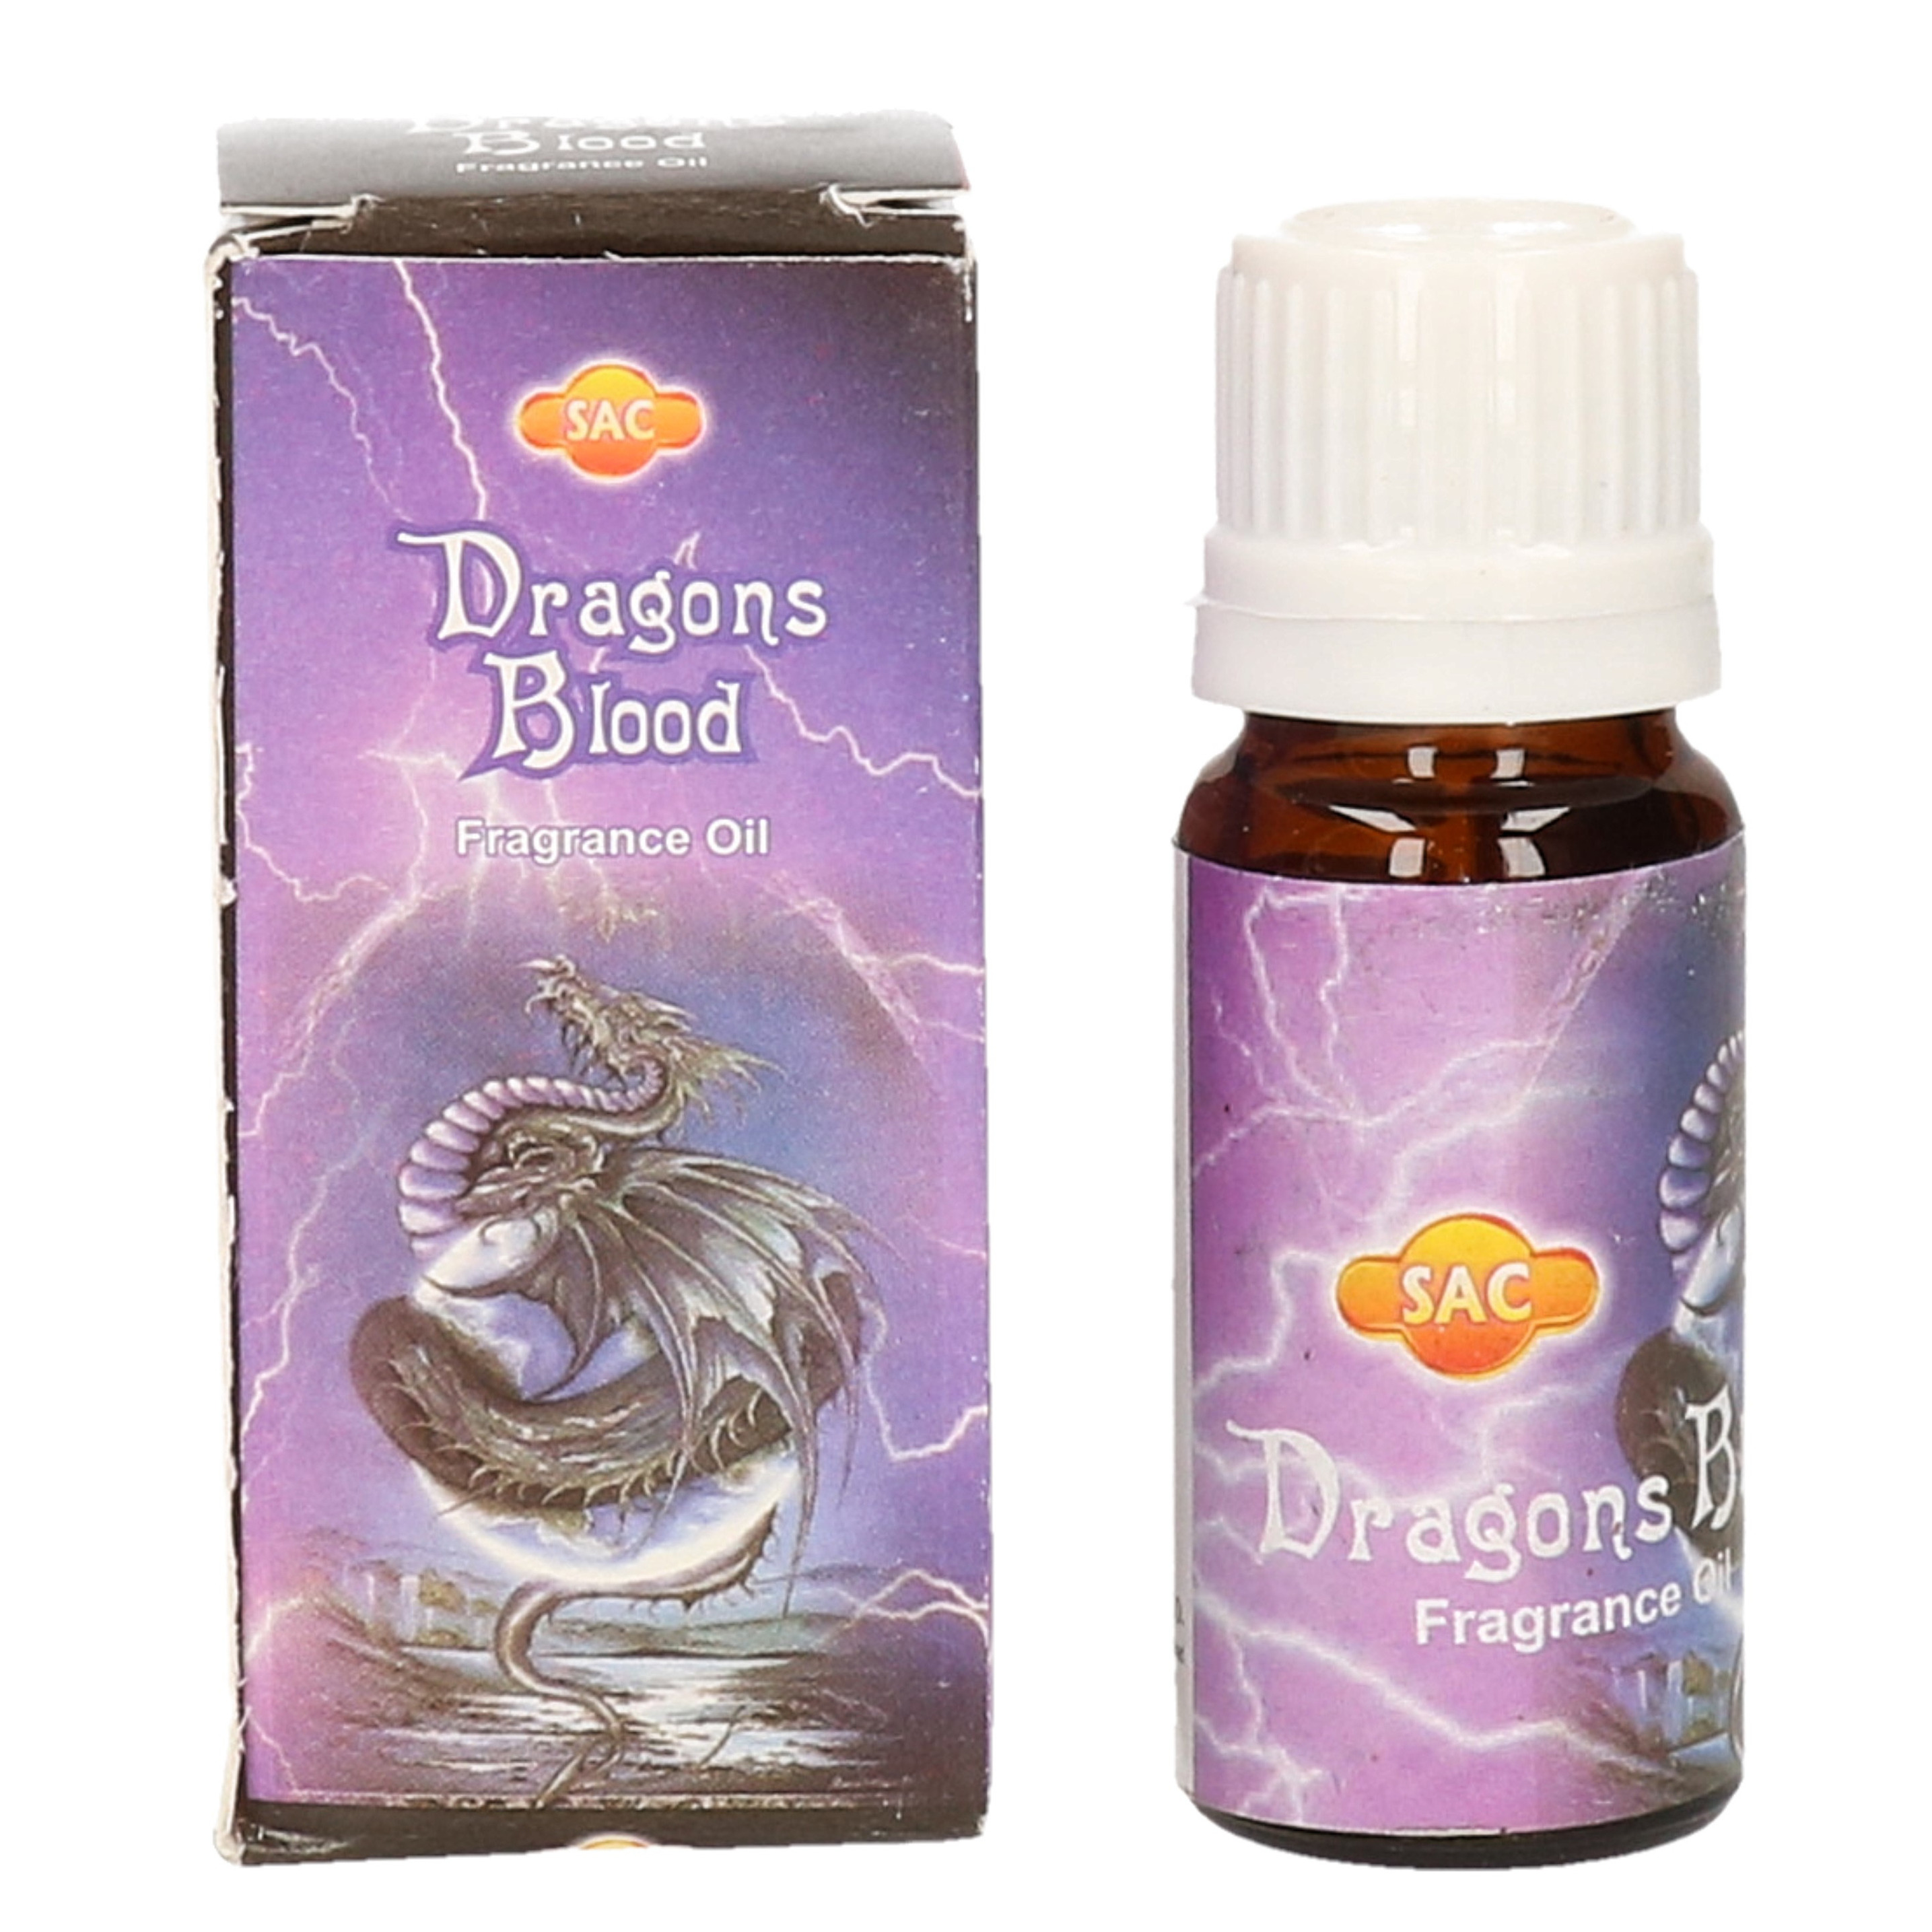 Dragons blood geur olie voor in brander